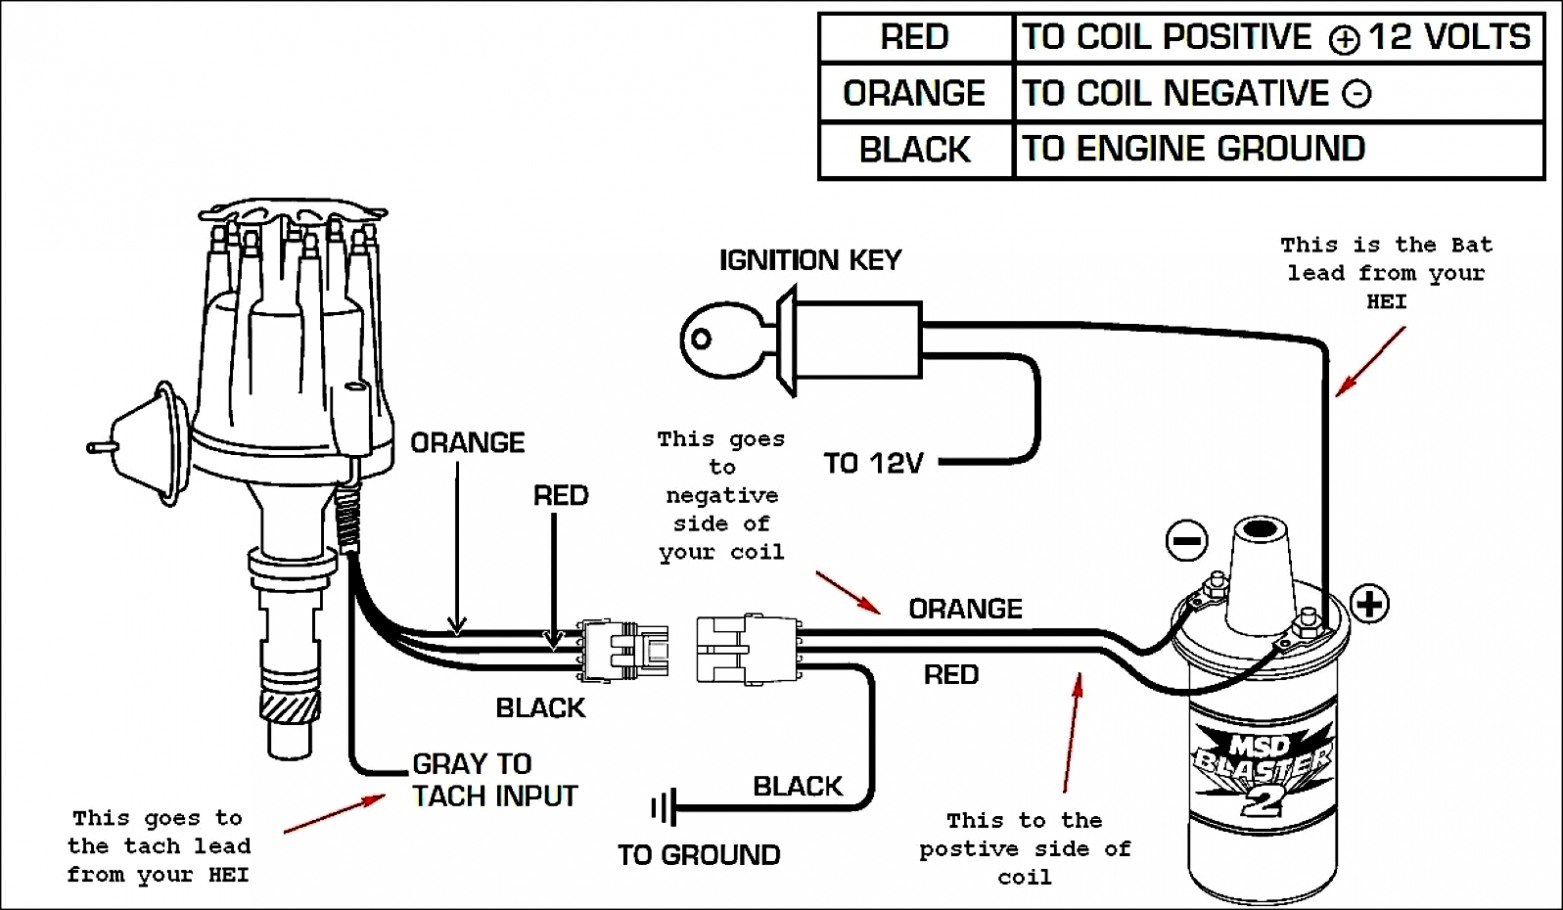 Chevy Tbi Wiring Diagram - Trusted Wiring Diagram Online - Ignition Switch Wiring Diagram Chevy